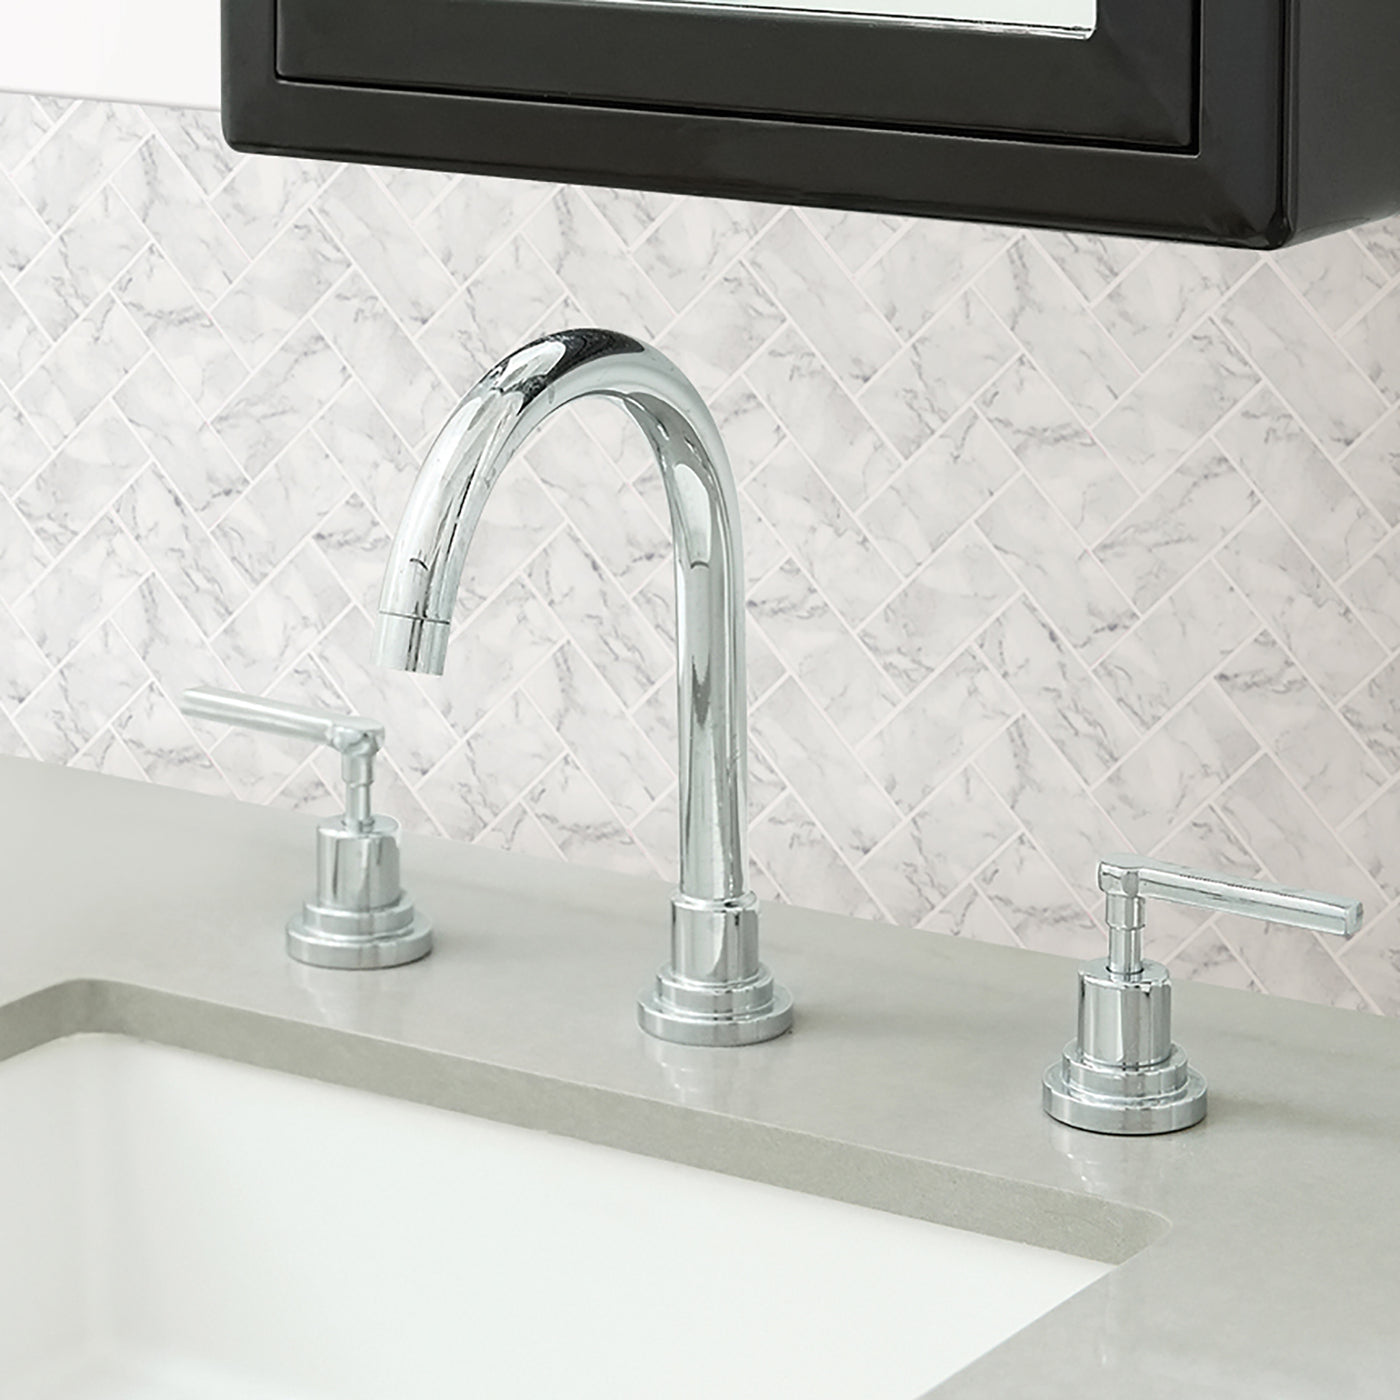 - Wallpops Herringbone Carrara Marble Peel And Stick Backsplash Tile